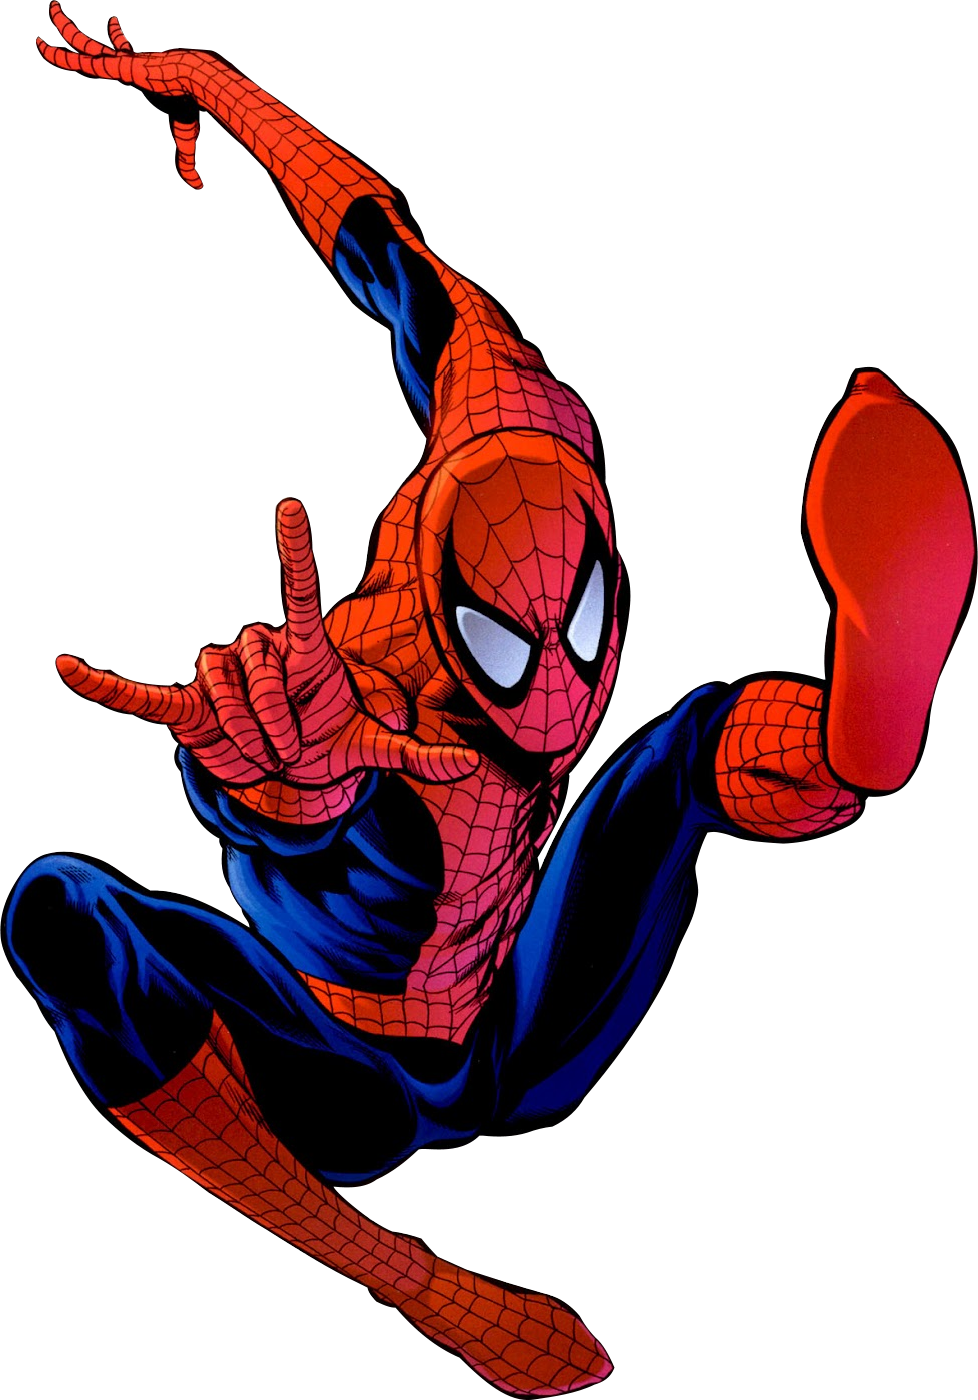 Logo clipart spiderman. Image spider man render